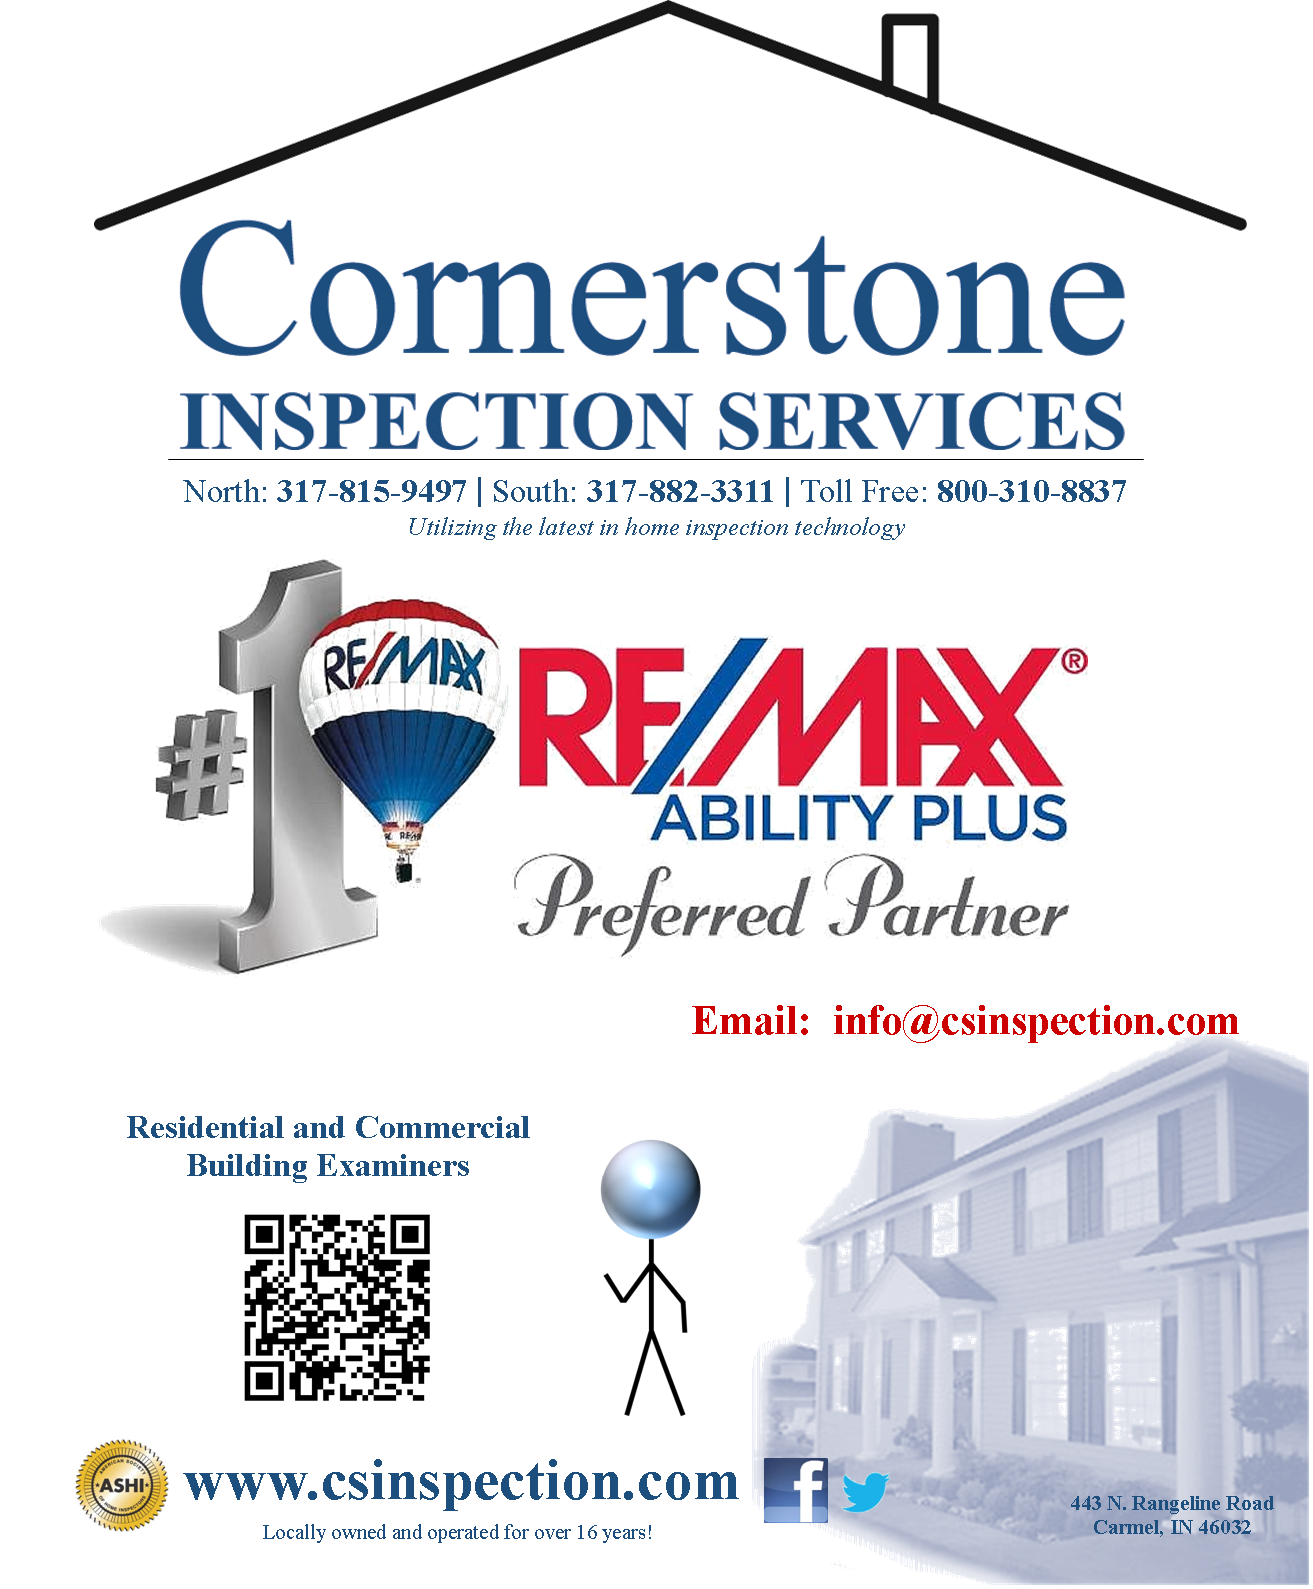 Homeinspection Remax Indiana New Re Max Ability Plus Preferred Partner Flyer Home Inspection Remax Indiana